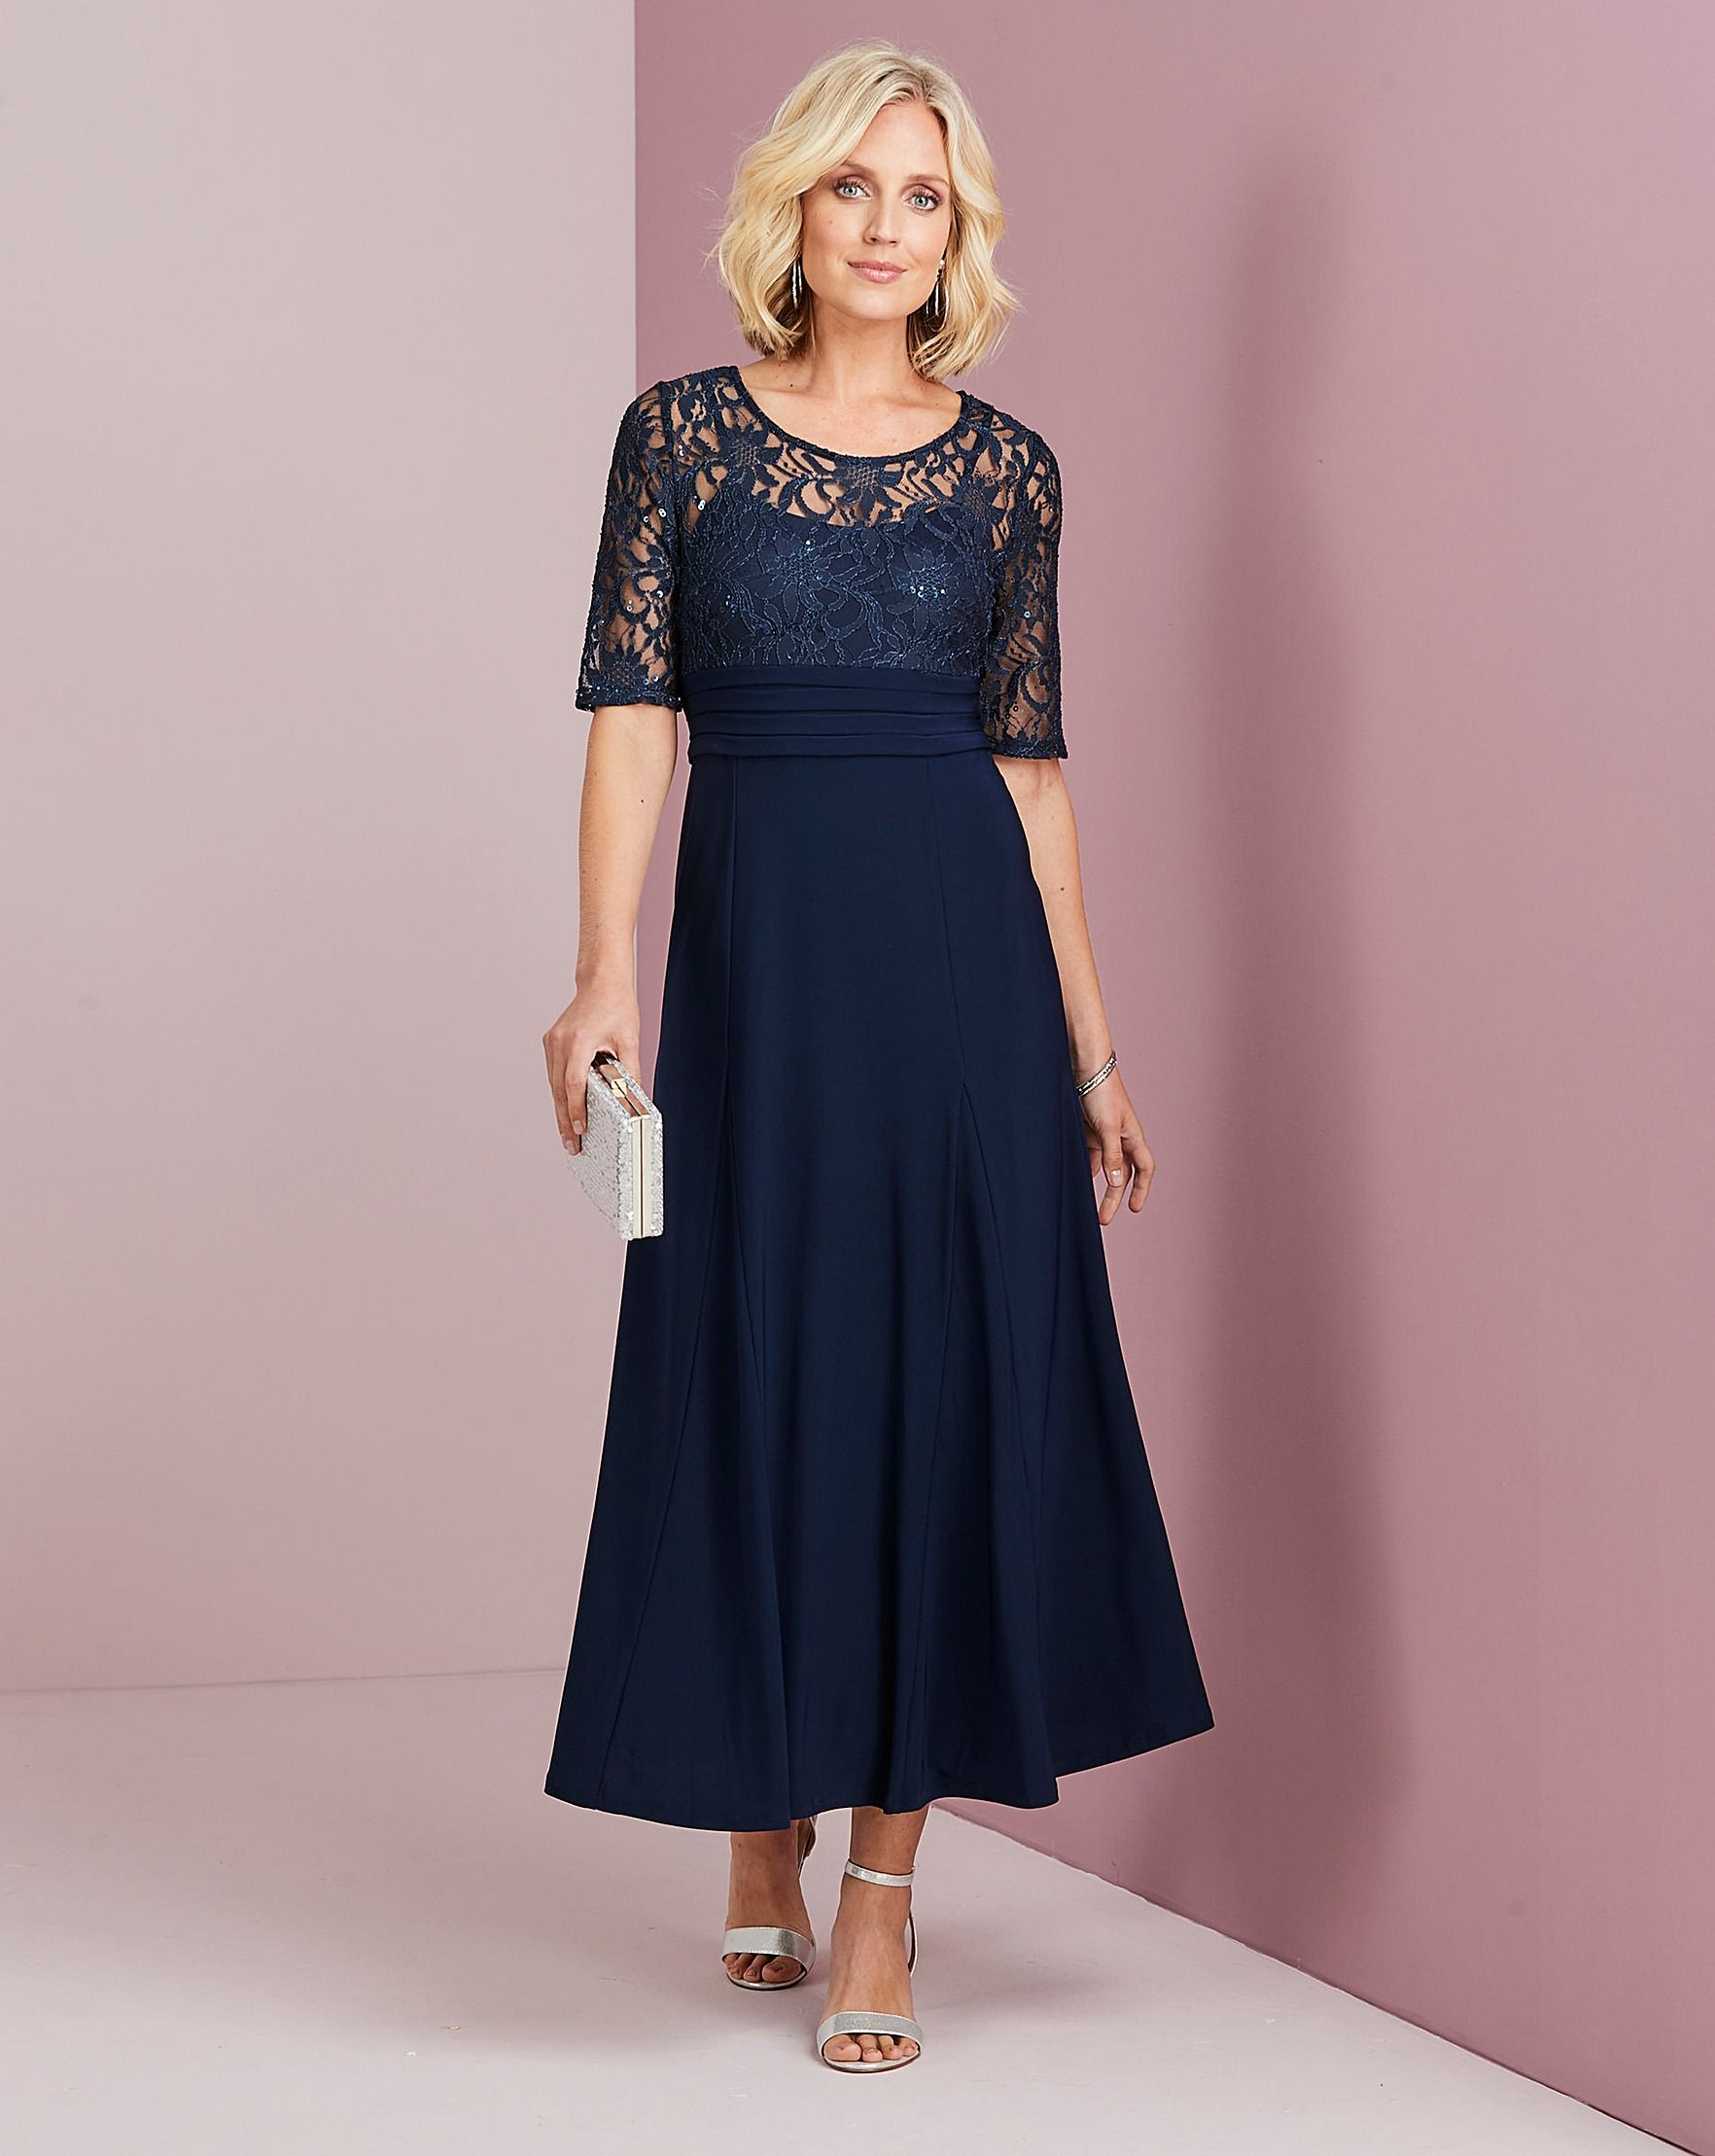 Pin By Vicki Hurley On Clothes Lace Bodice Dresses Fashion Dresses [ 2217 x 1764 Pixel ]